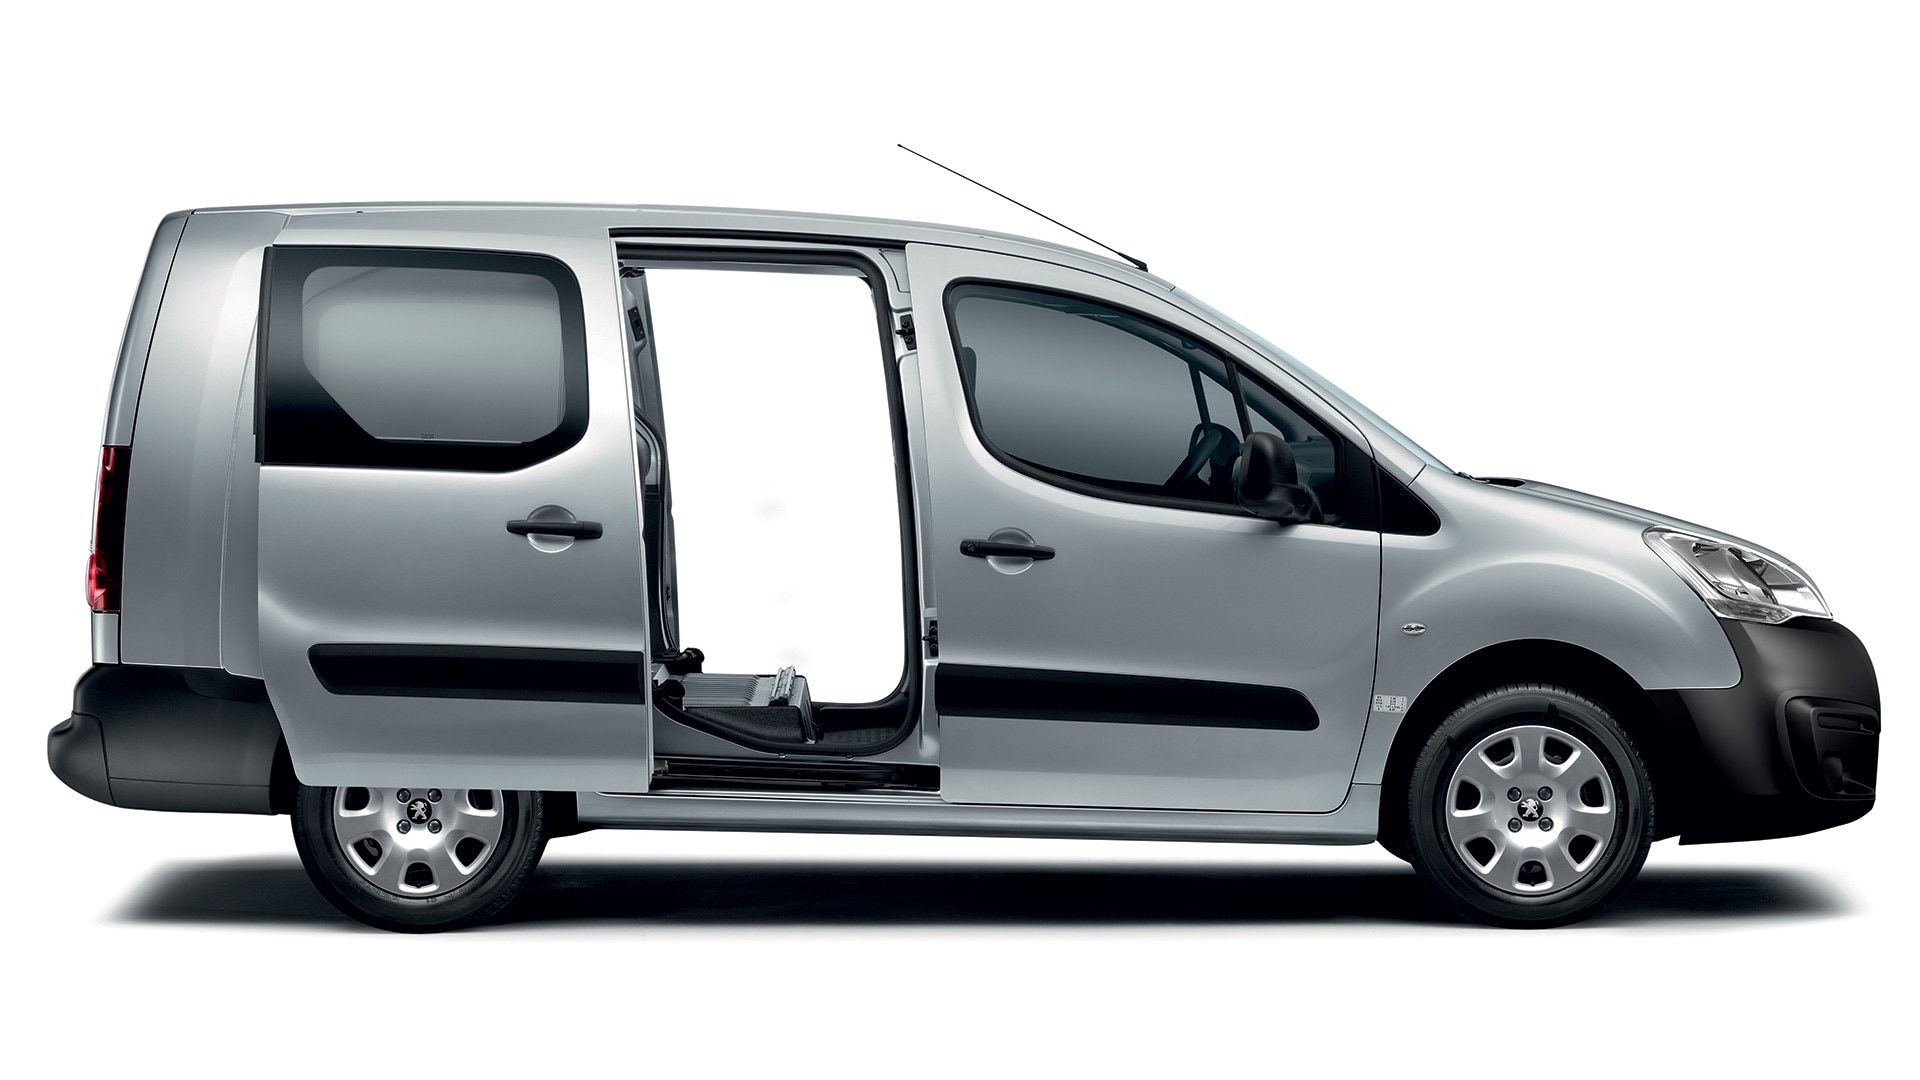 Peugeot Partner Showroom Small Work Van Test Drive Today